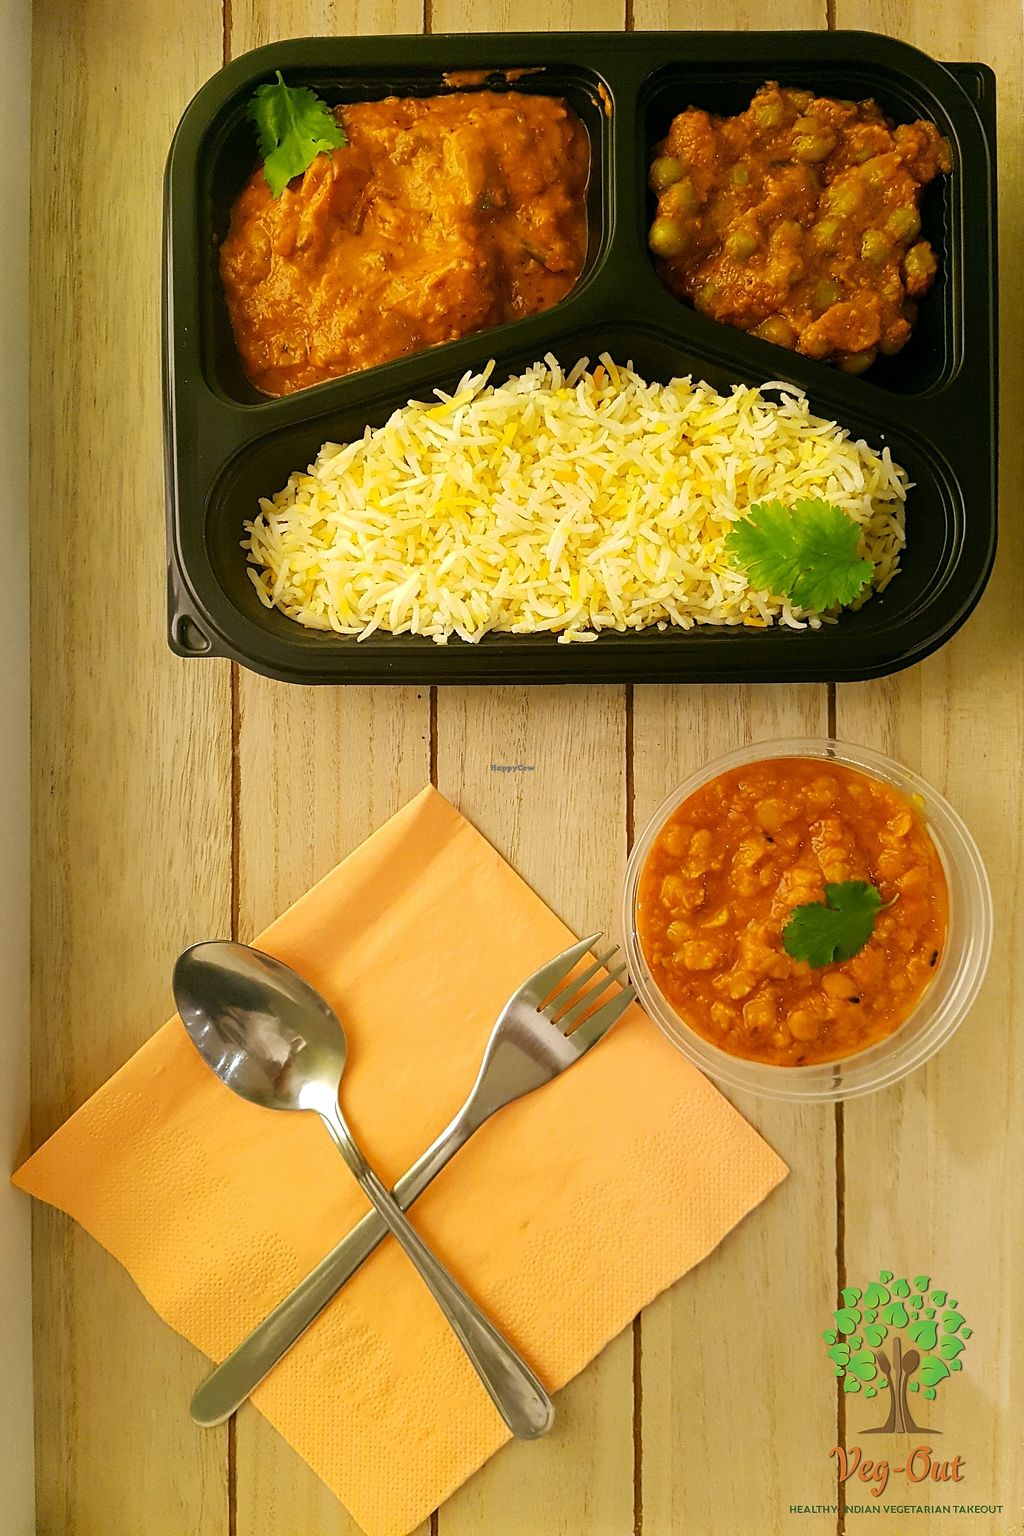 """Photo of Veg-Out  by <a href=""""/members/profile/VegOut-Amsterdam"""">VegOut-Amsterdam</a> <br/>The top seller! Menu box set. 3 different curries with rice or chapathi <br/> January 12, 2018  - <a href='/contact/abuse/image/109336/345847'>Report</a>"""